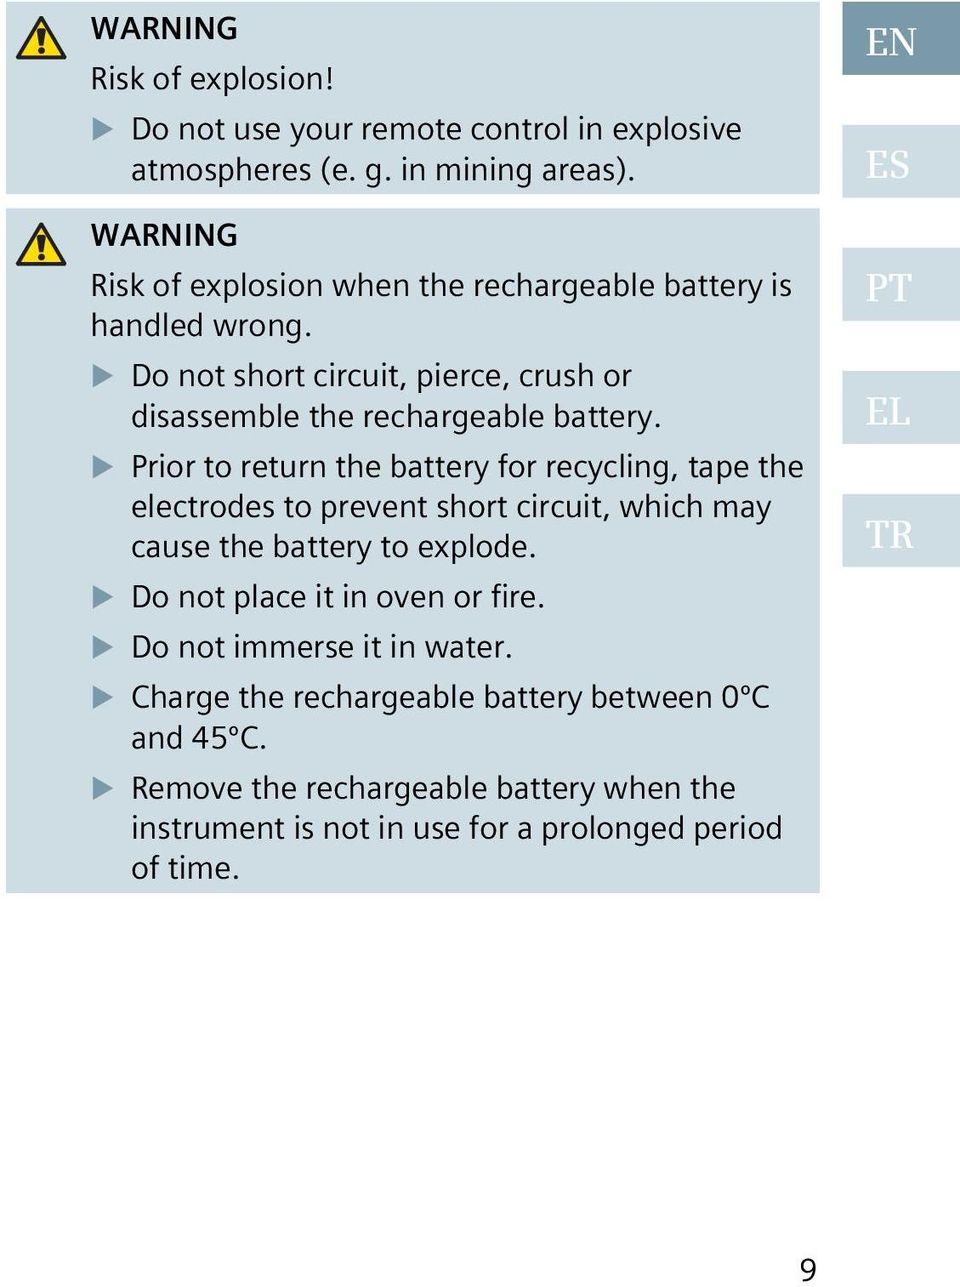 Prior to return the battery for recycling, tape the electrodes to prevent short circuit, which may cause the battery to explode.